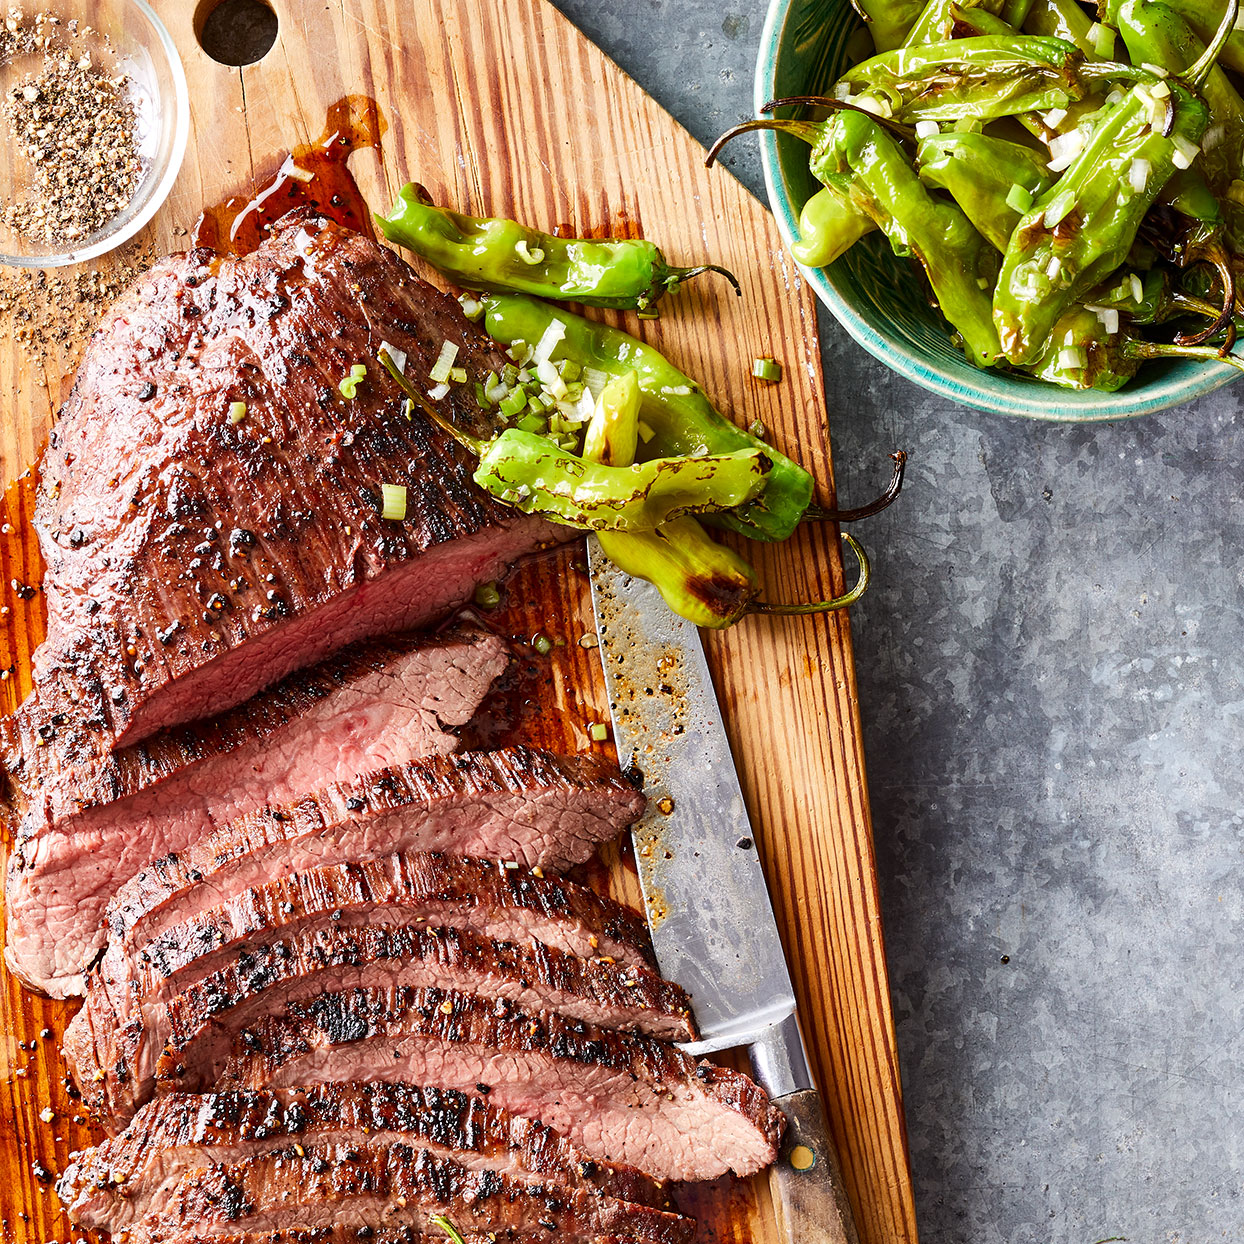 This flank steak recipe comes together easily on a baking sheet, but if you're itching to take it outside, fire up the grill instead. Just be sure to use a grill basket for the peppers so you don't end up chasing them around the grates, or worse, losing them to the fire.